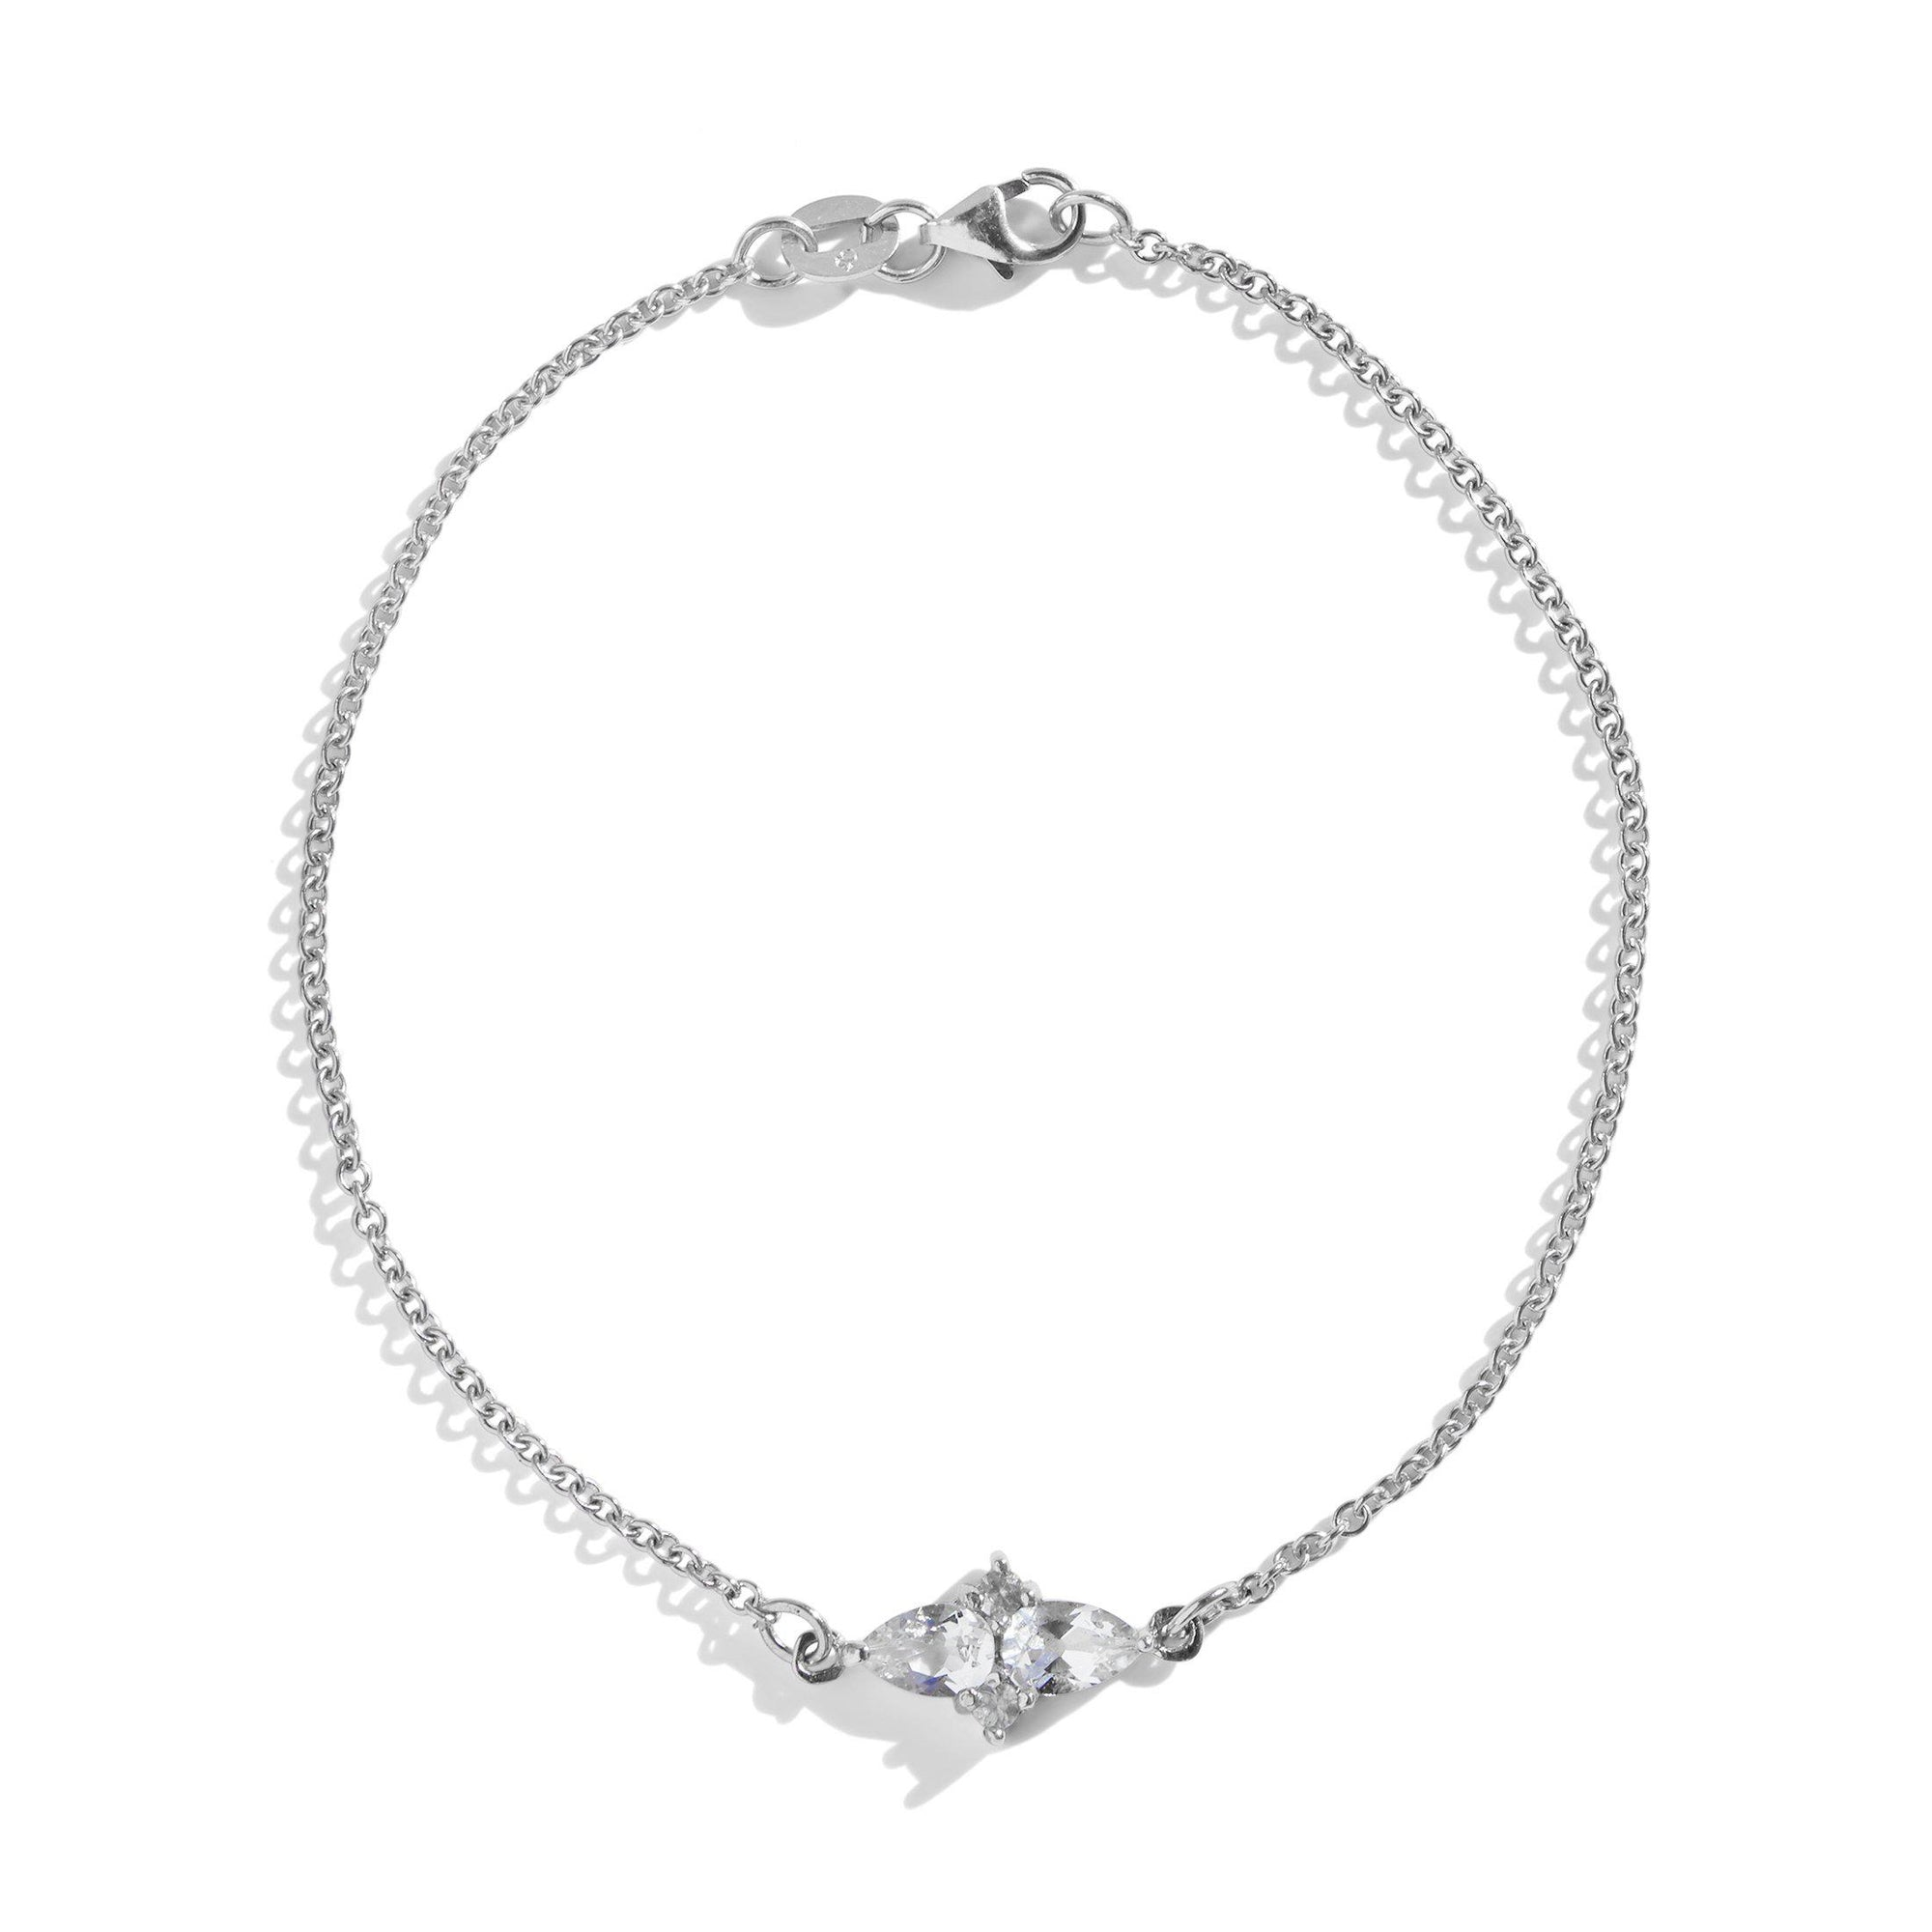 The Double Pear Cluster White Topaz Bracelet in Silver